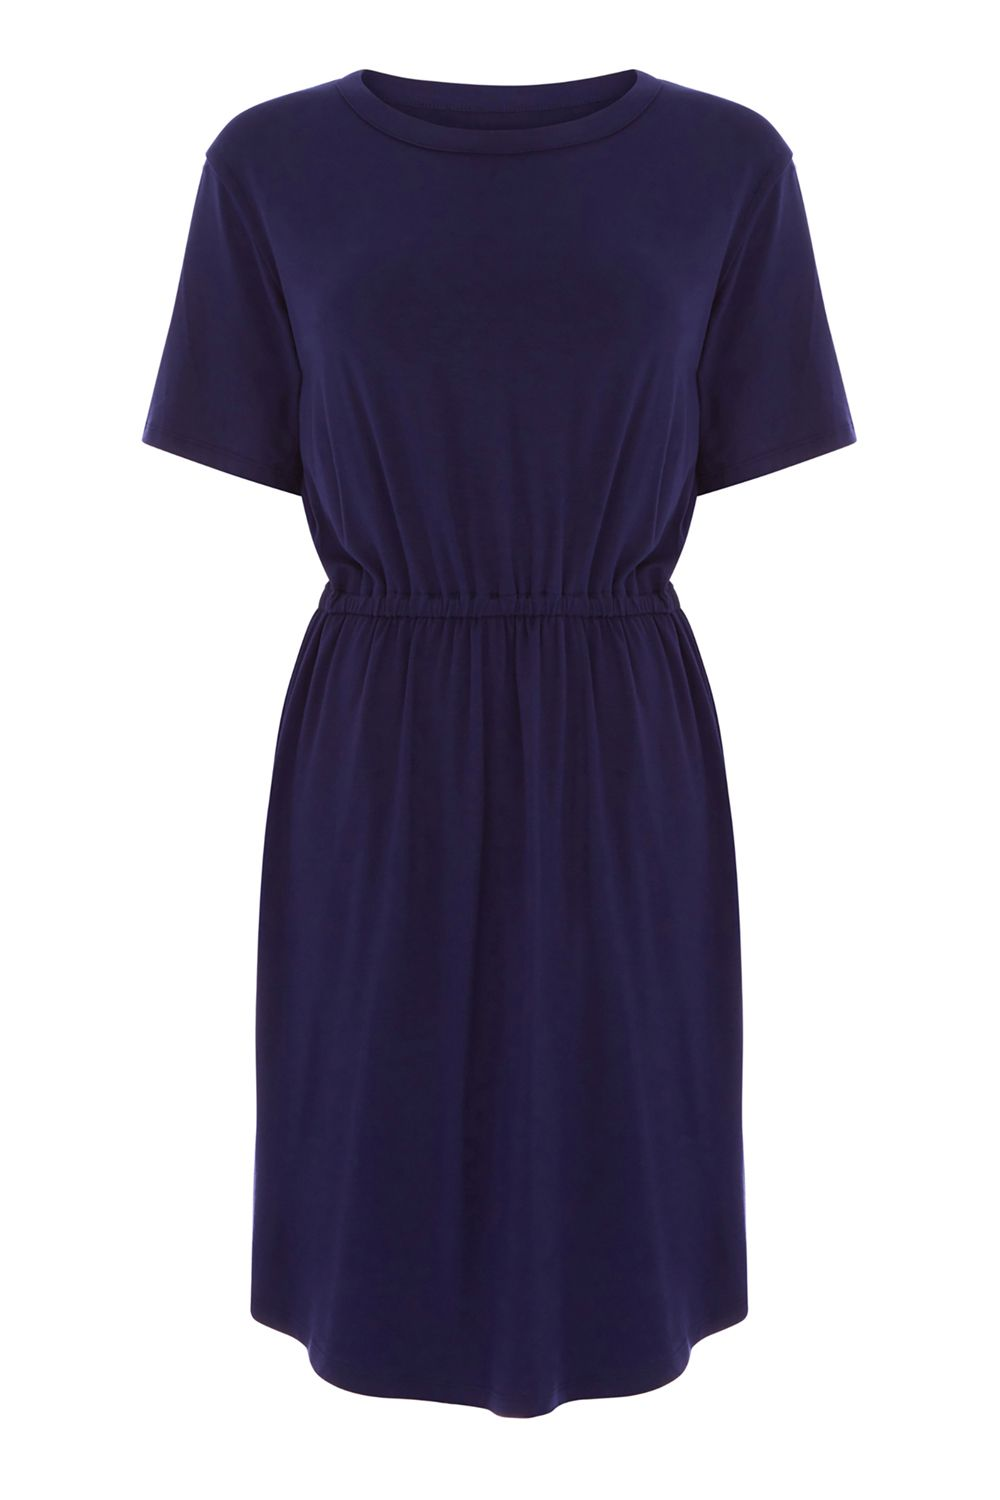 Warehouse Gathered Waist T-Shirt Dress, Blue